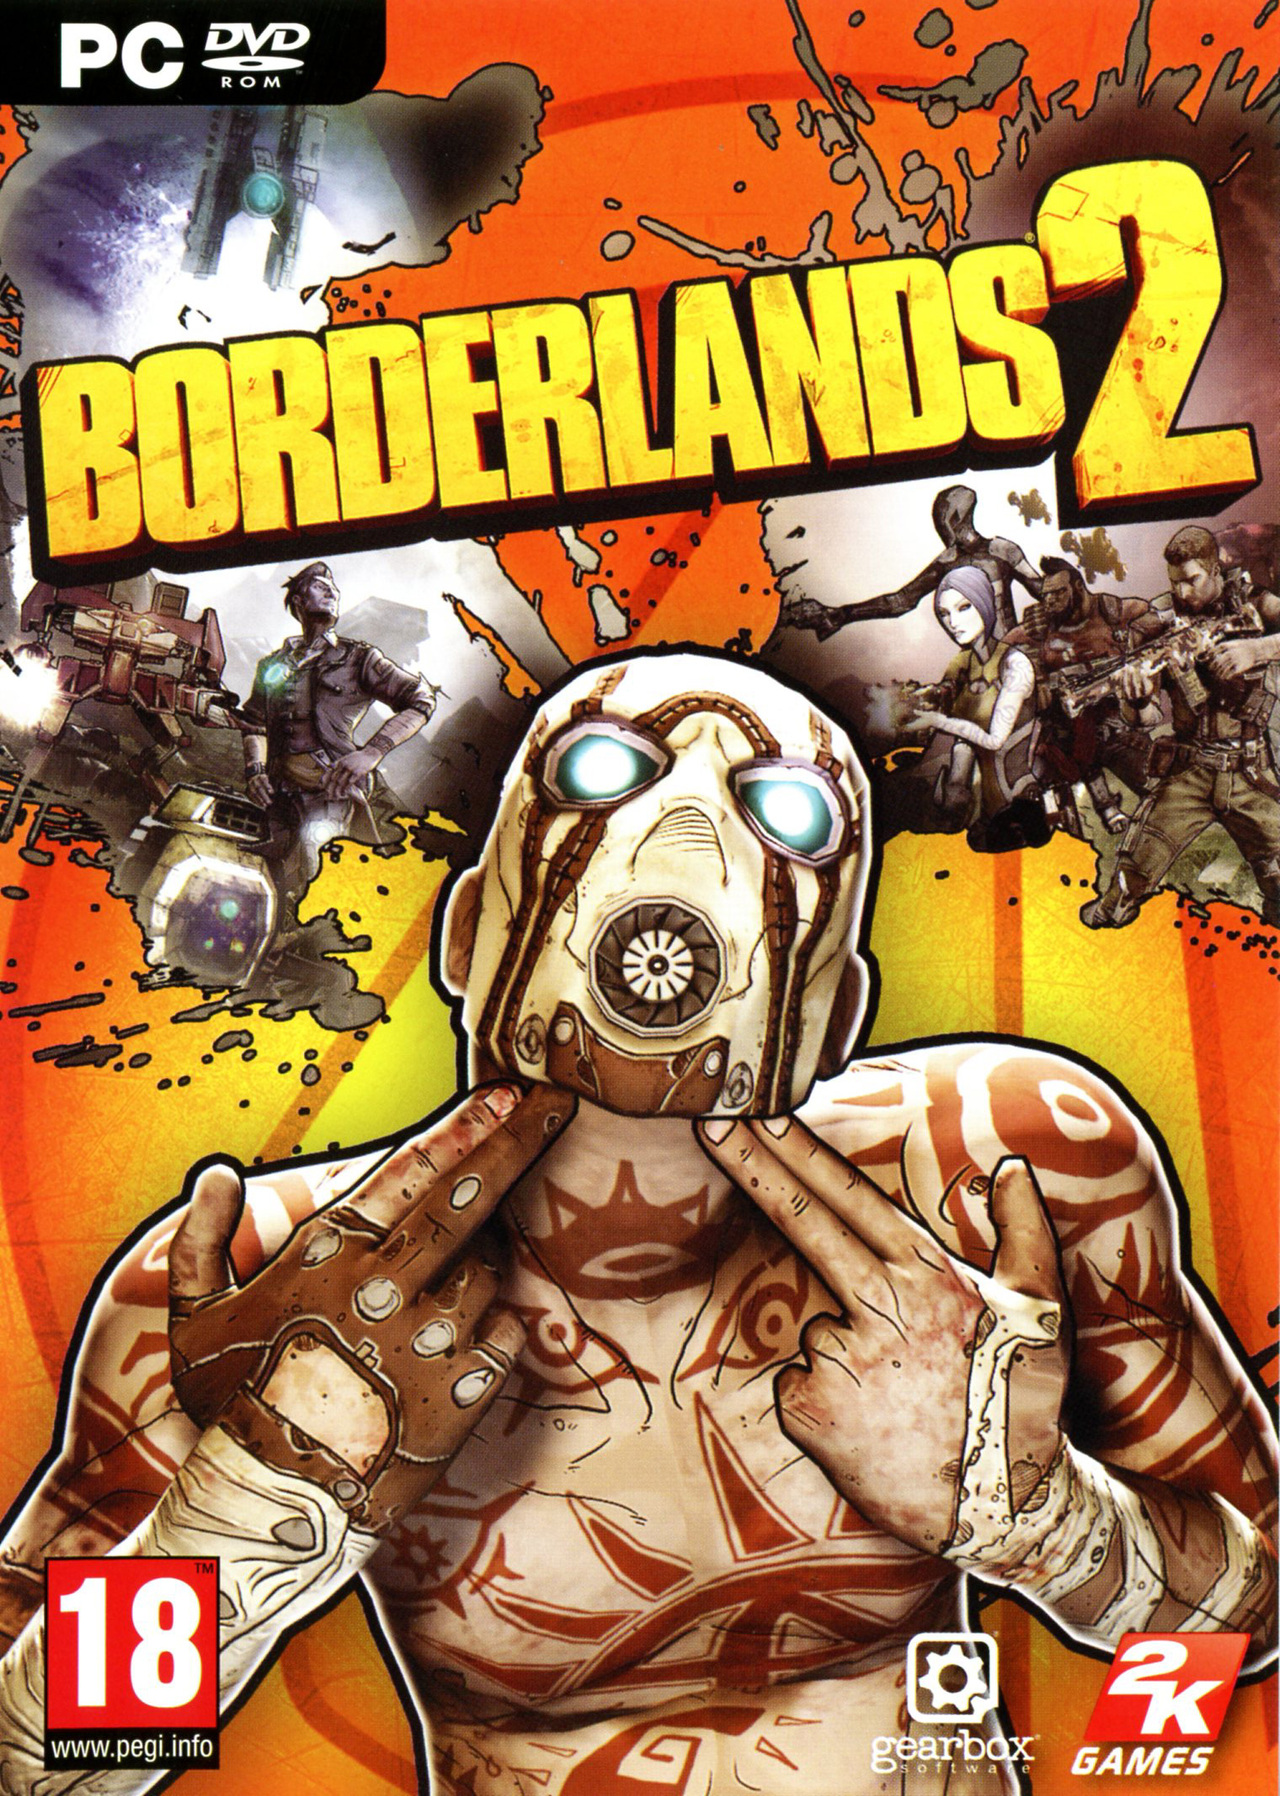 Borderlands 2 sur PC - jeuxvideo.com Borderlands